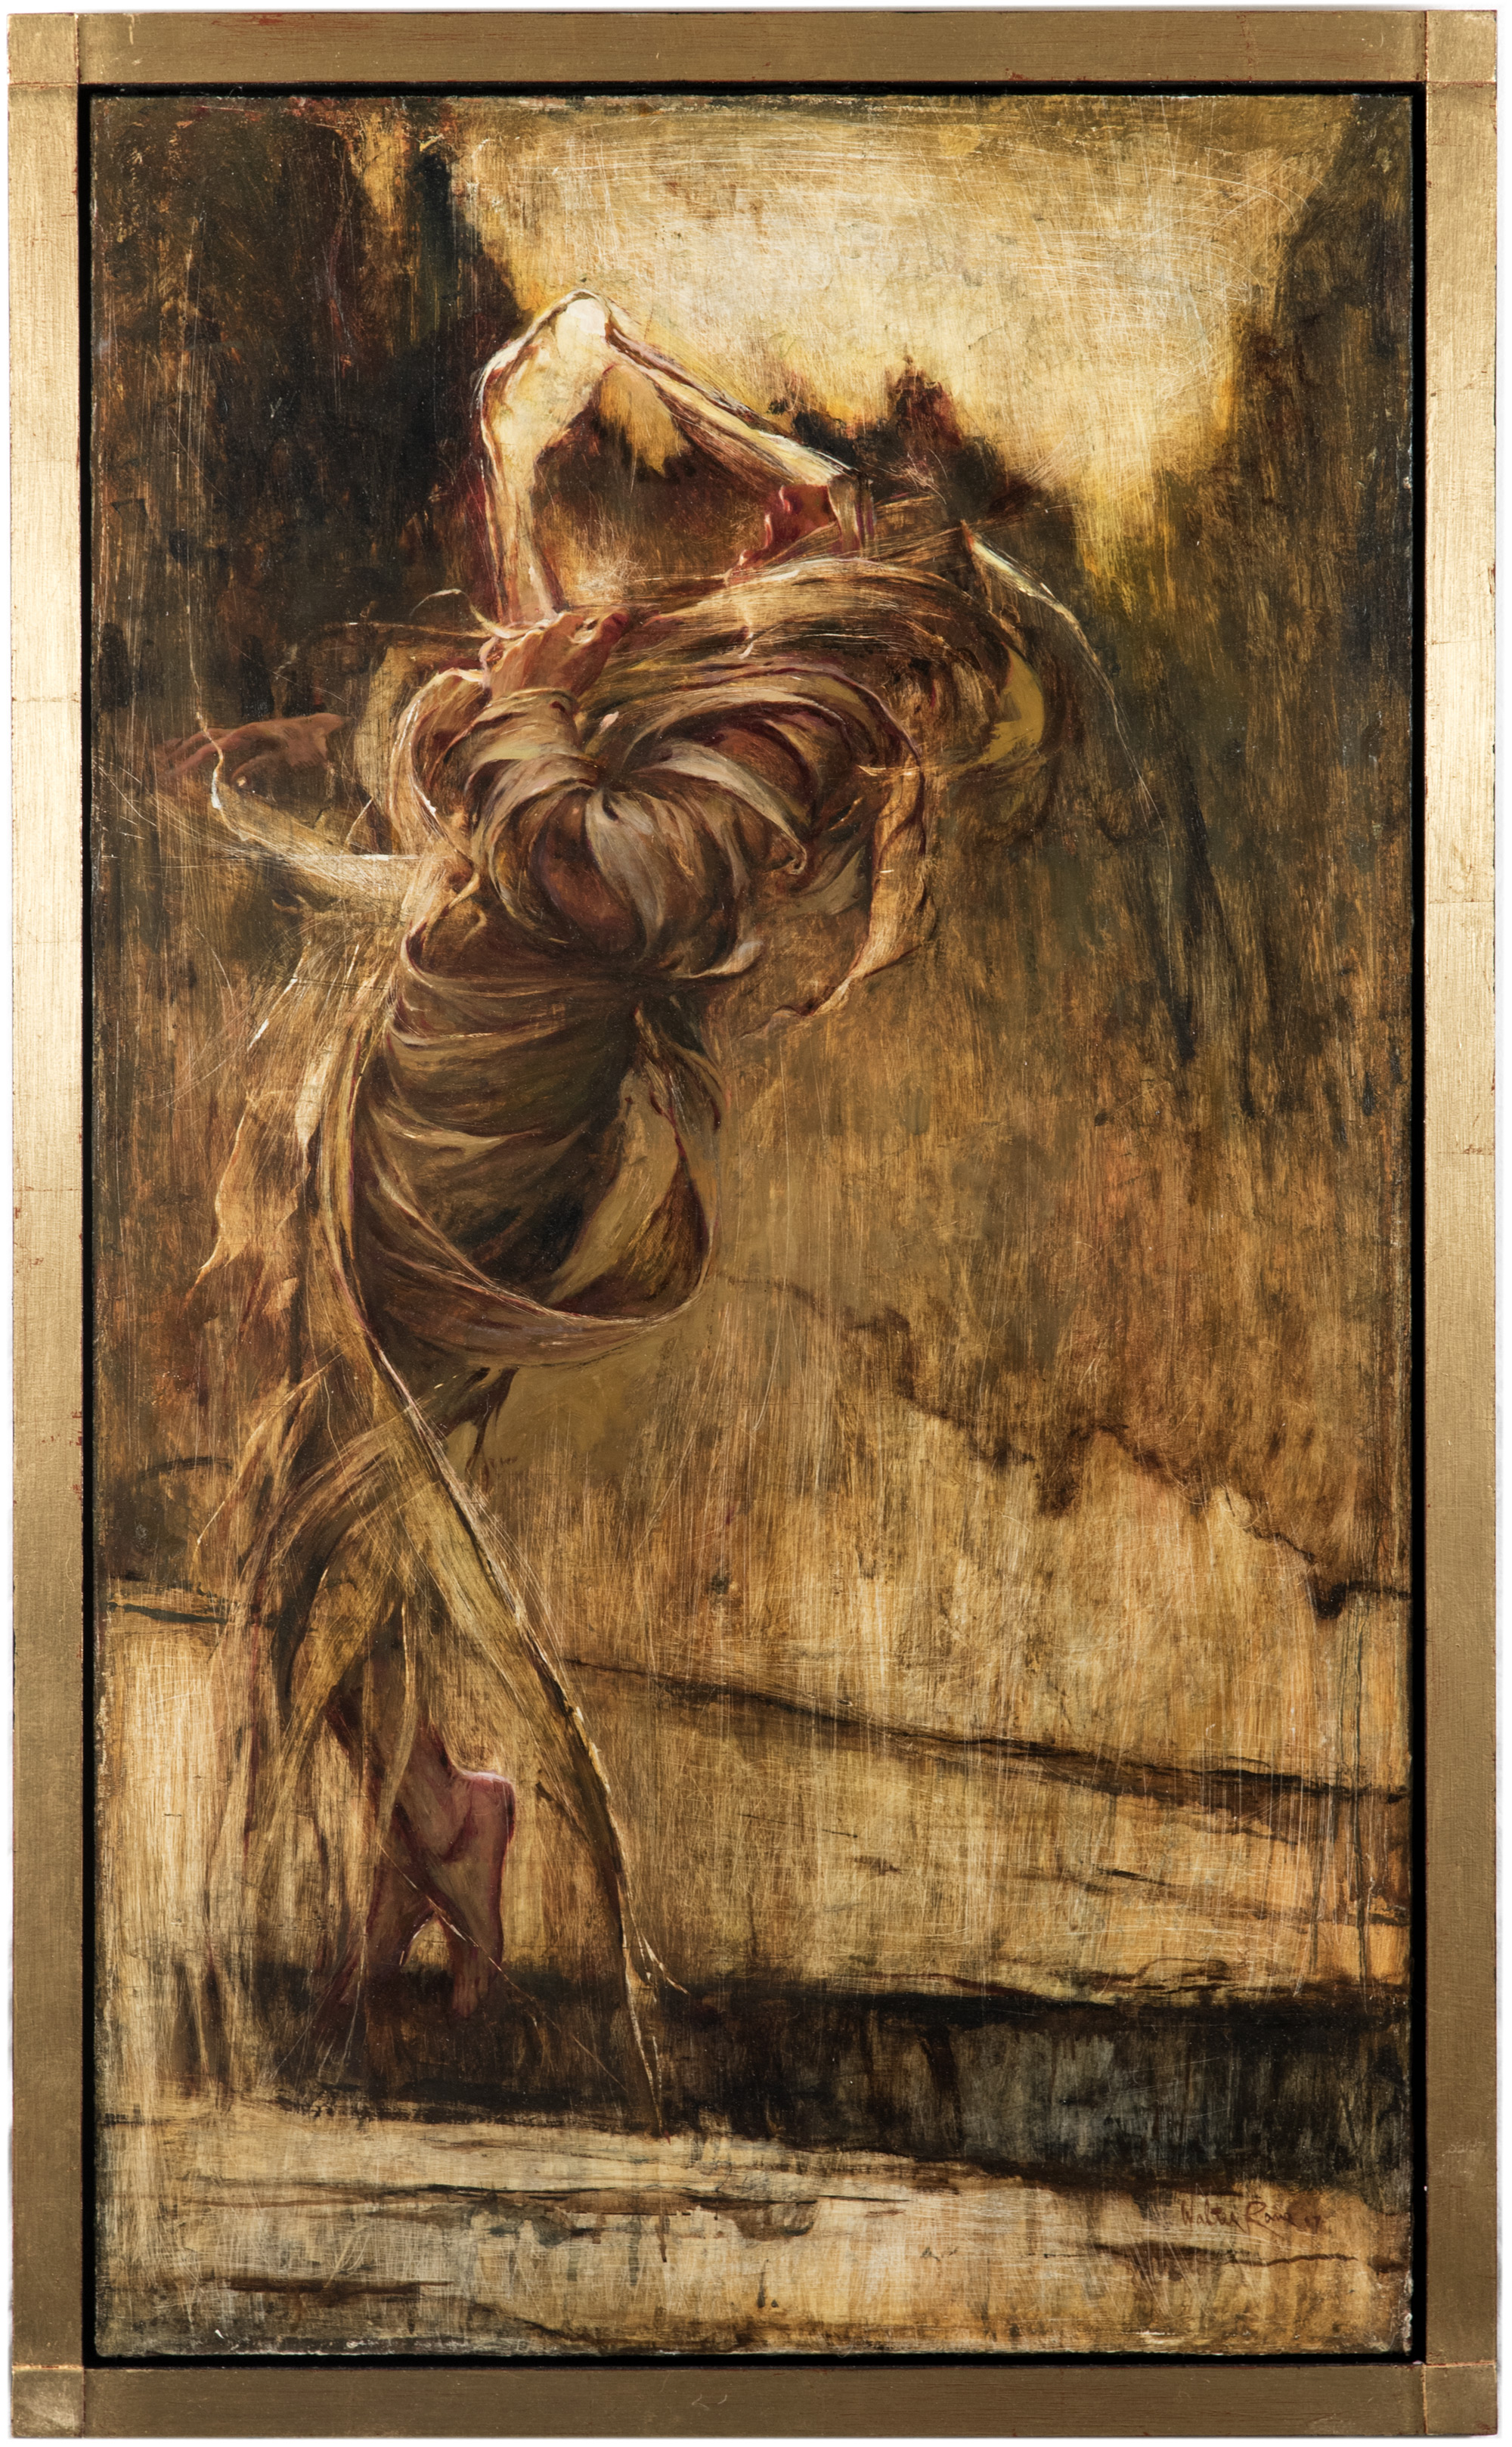 Breath of Life  by Walter Rane. Oil on Canvas. 48 x 28 in. From the Zion Art Invitational.